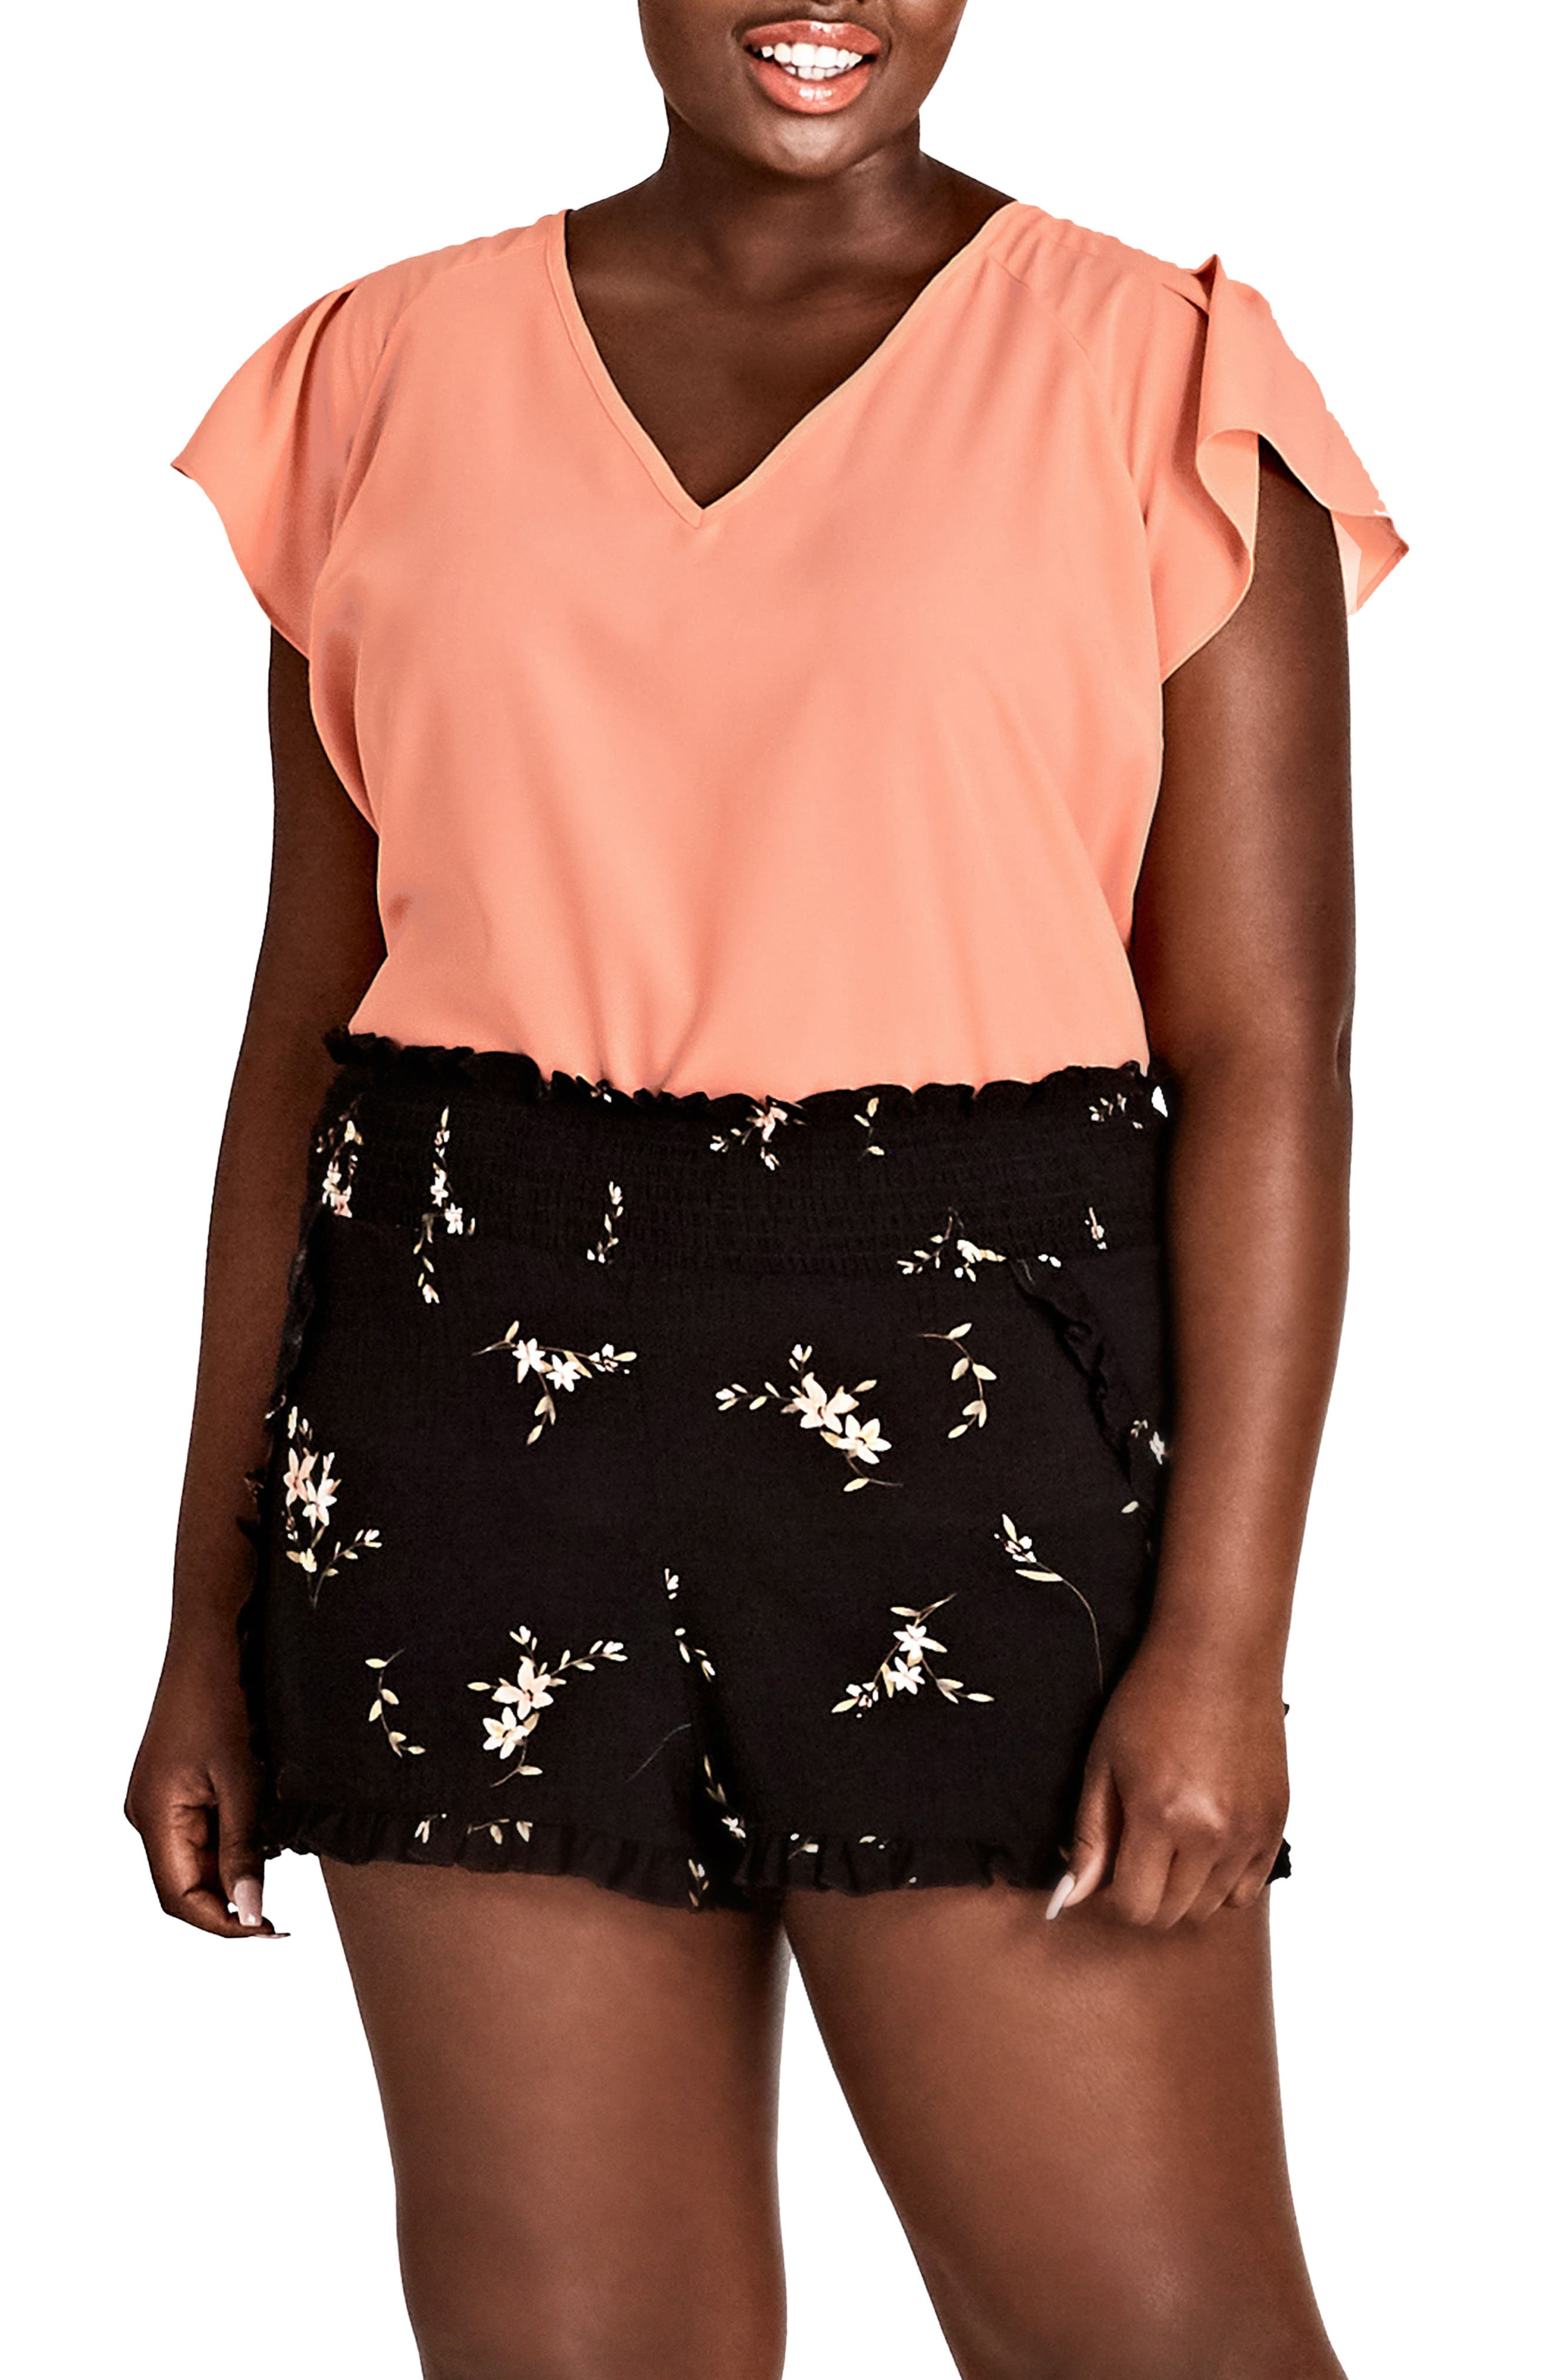 Aerial Floral Pull-On Shorts,                             Alternate thumbnail 3, color,                             002